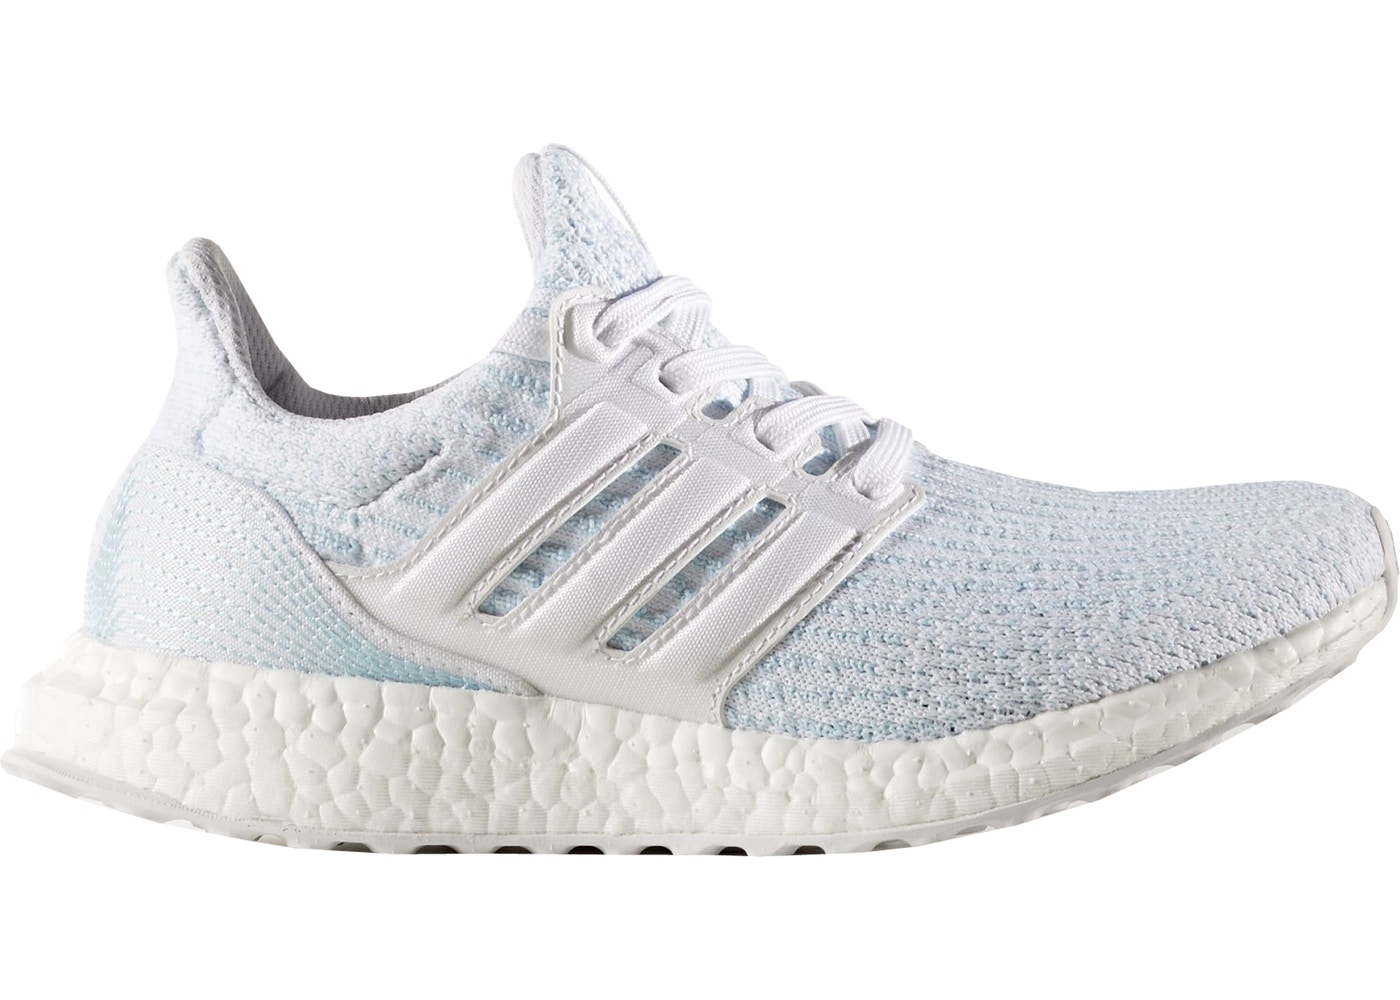 detailed look 27a62 4c63d adidas Ultra Boost 3.0 Parley Coral Bleaching (GS)